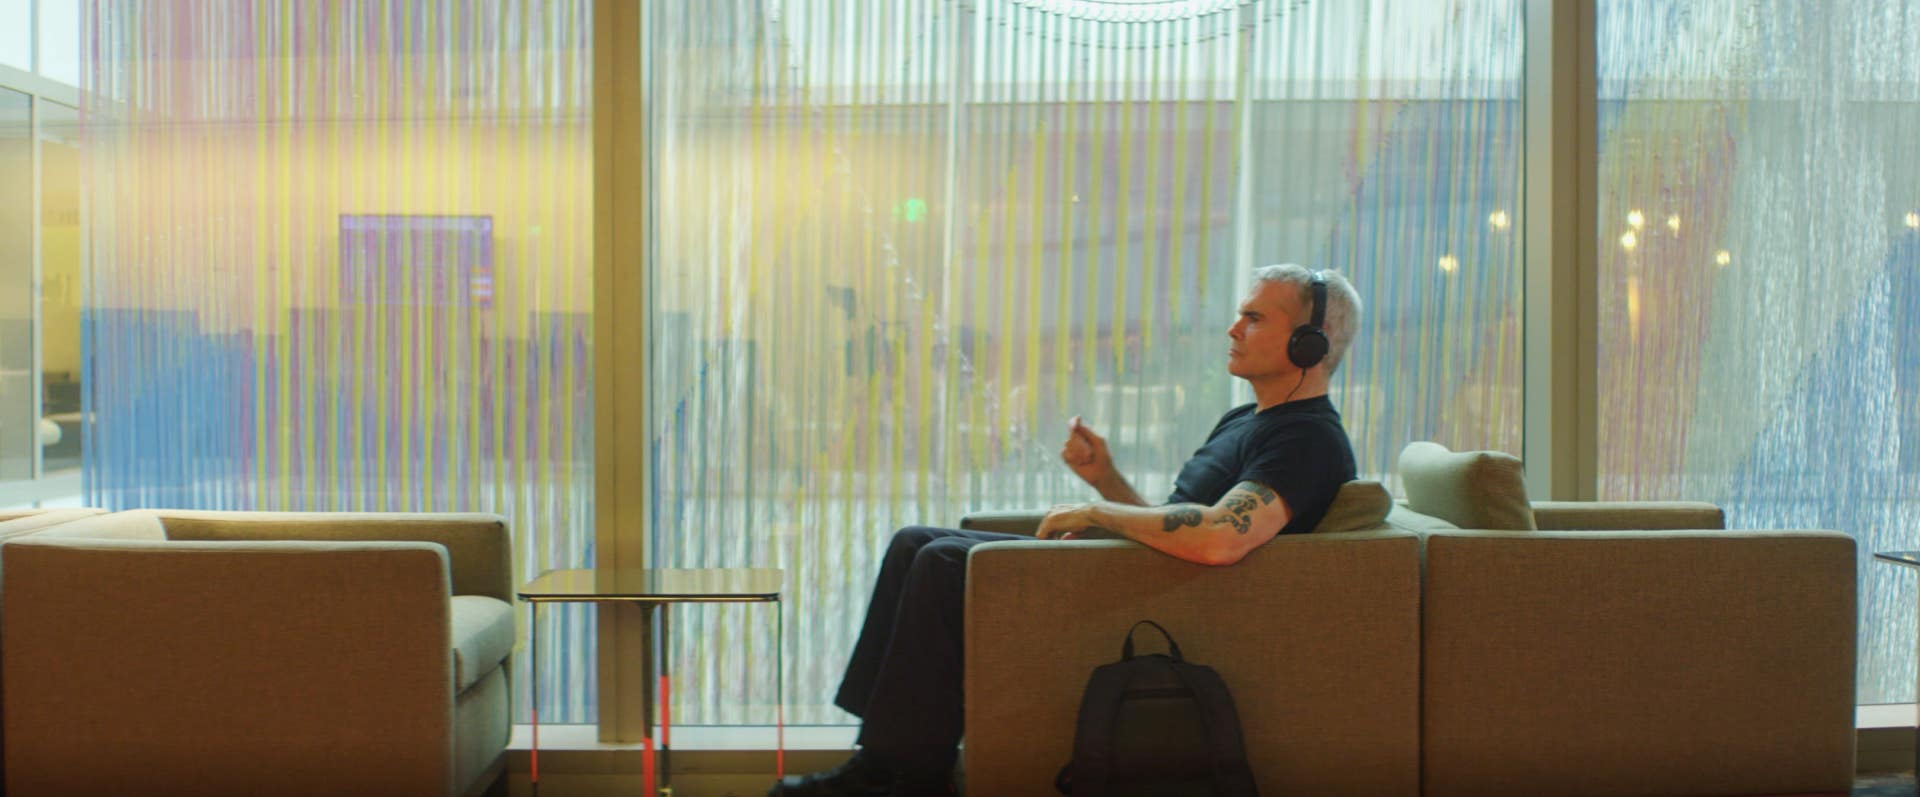 Henry Rollins relaxes with headphones in the Executive Lounge at LAX